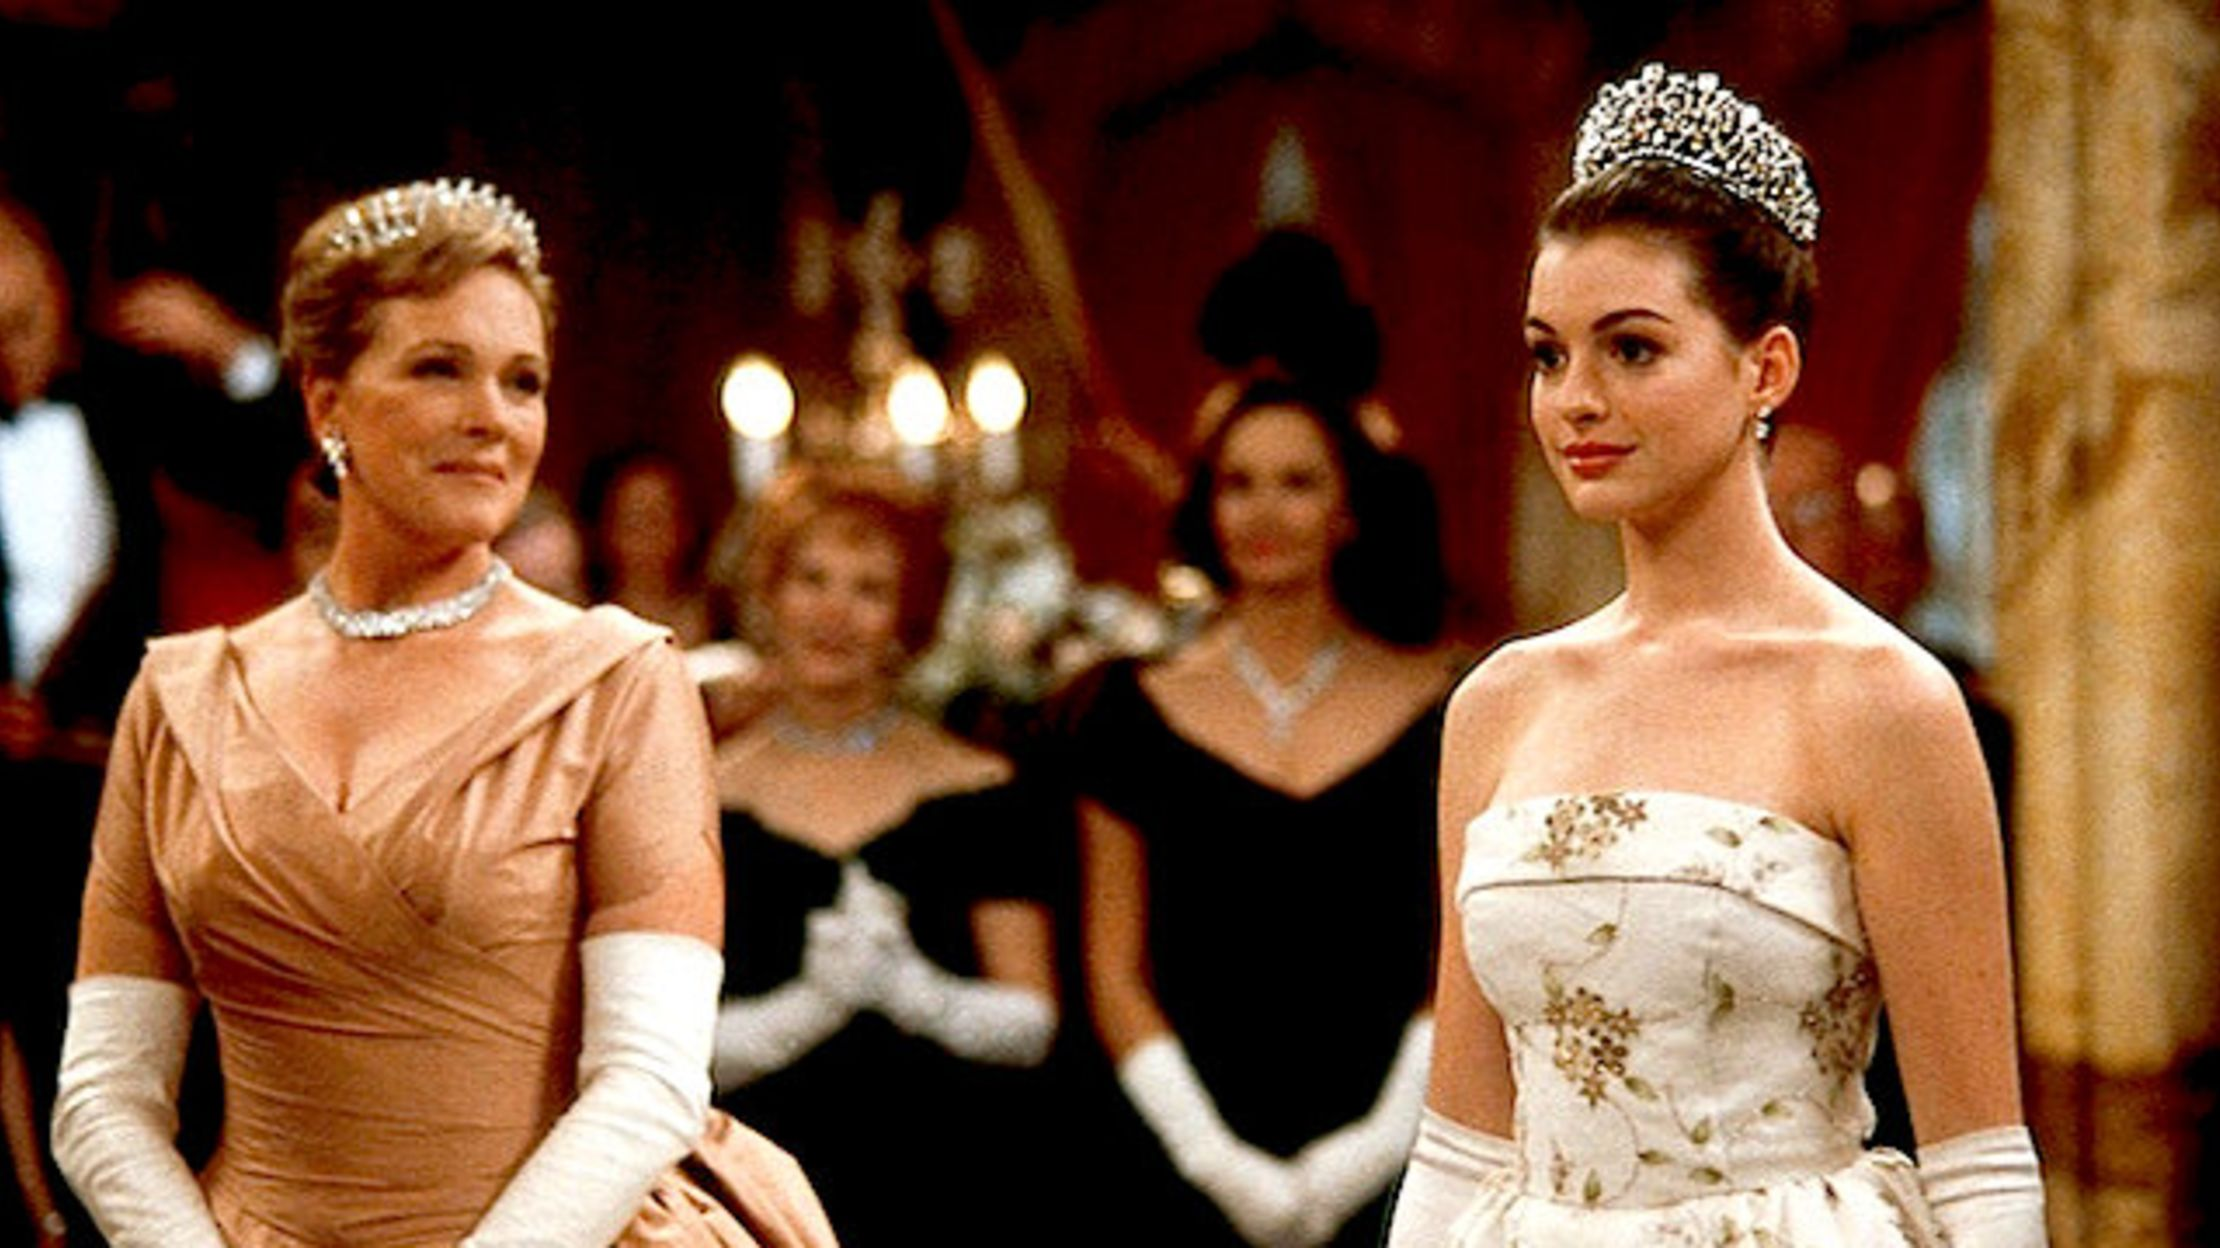 A Royal Christmas Ball Cast.12 Regal Facts About The Princess Diaries Mental Floss